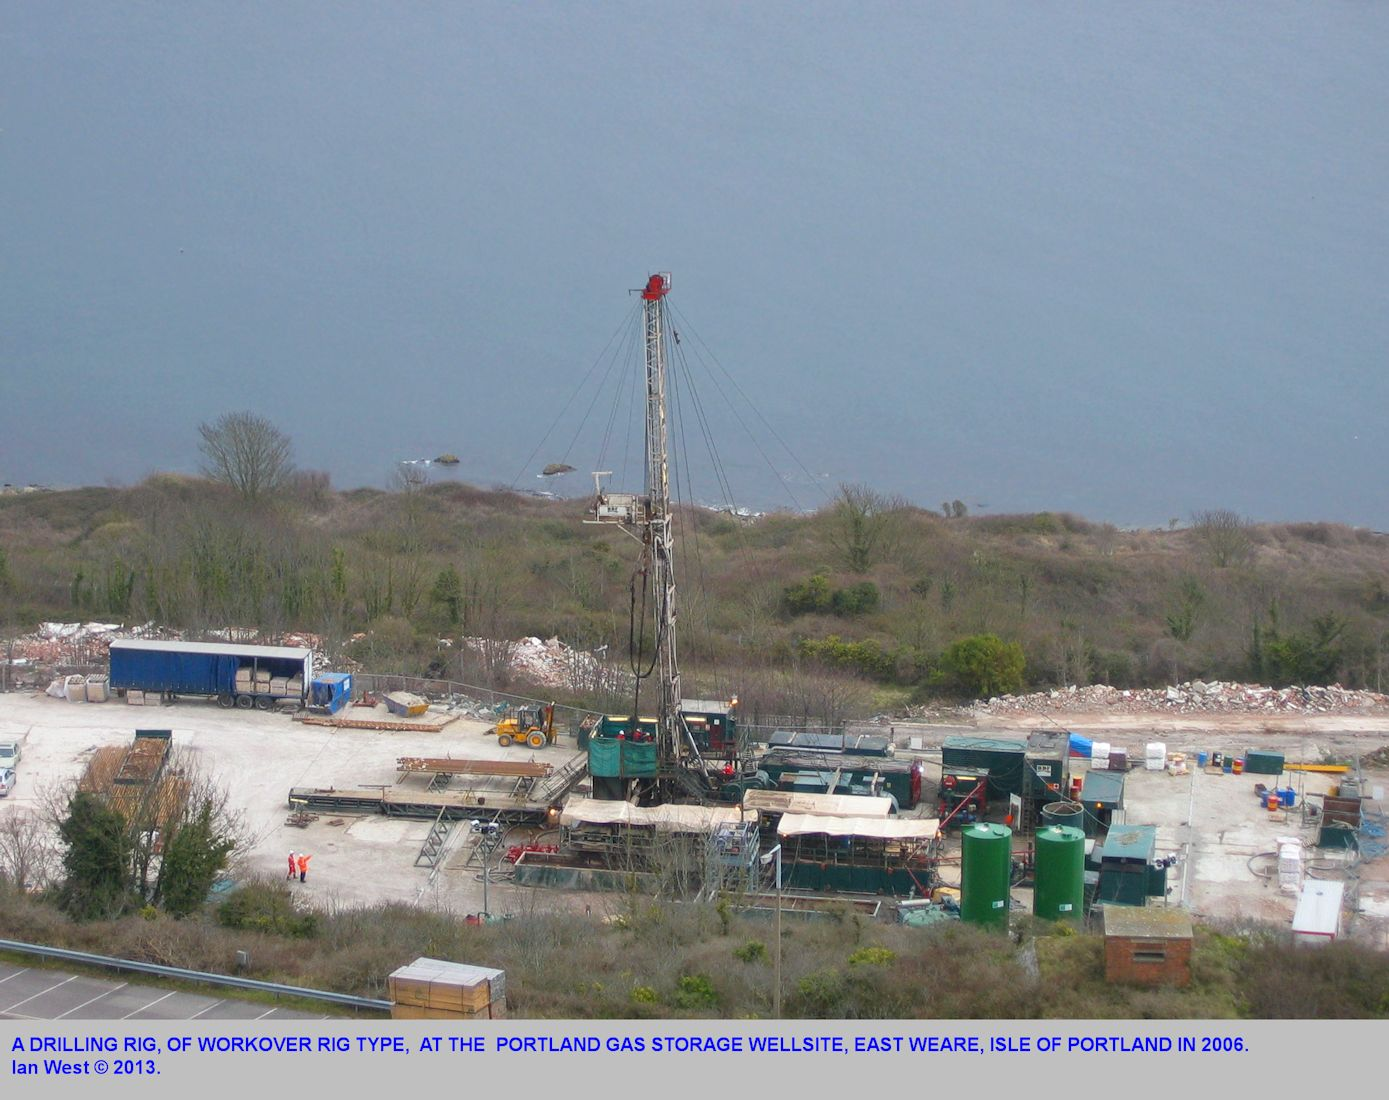 A closer view of the borehole site for the gas storage project at East Weare, Isle of Portland, Dorset, as seen in 2006